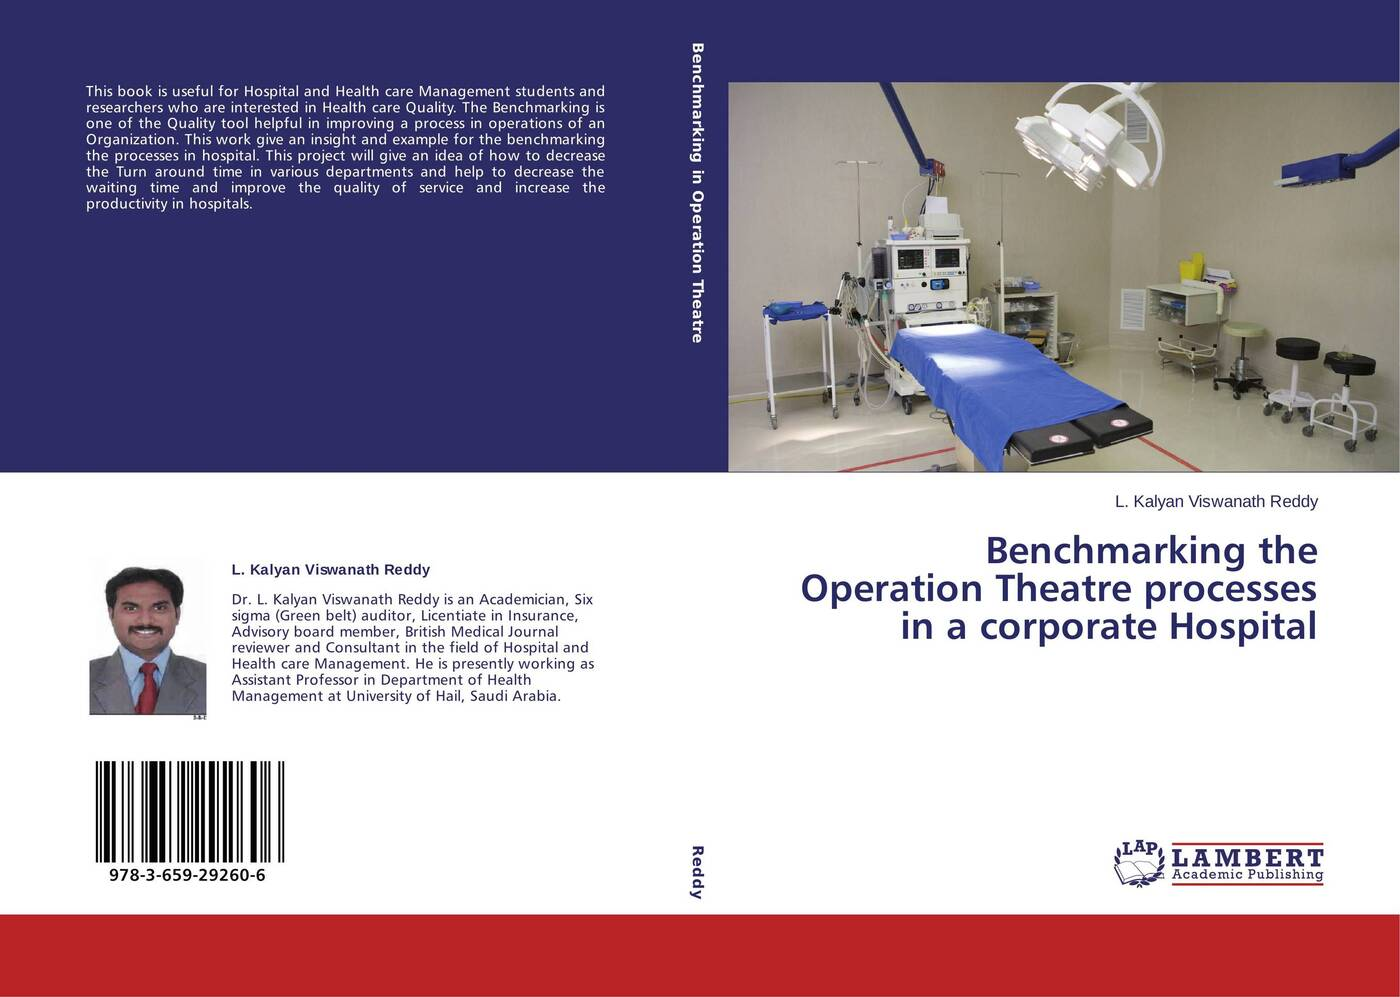 L. Kalyan Viswanath Reddy Benchmarking the Operation Theatre processes in a corporate Hospital felix j palma the map of time and the turn of the screw